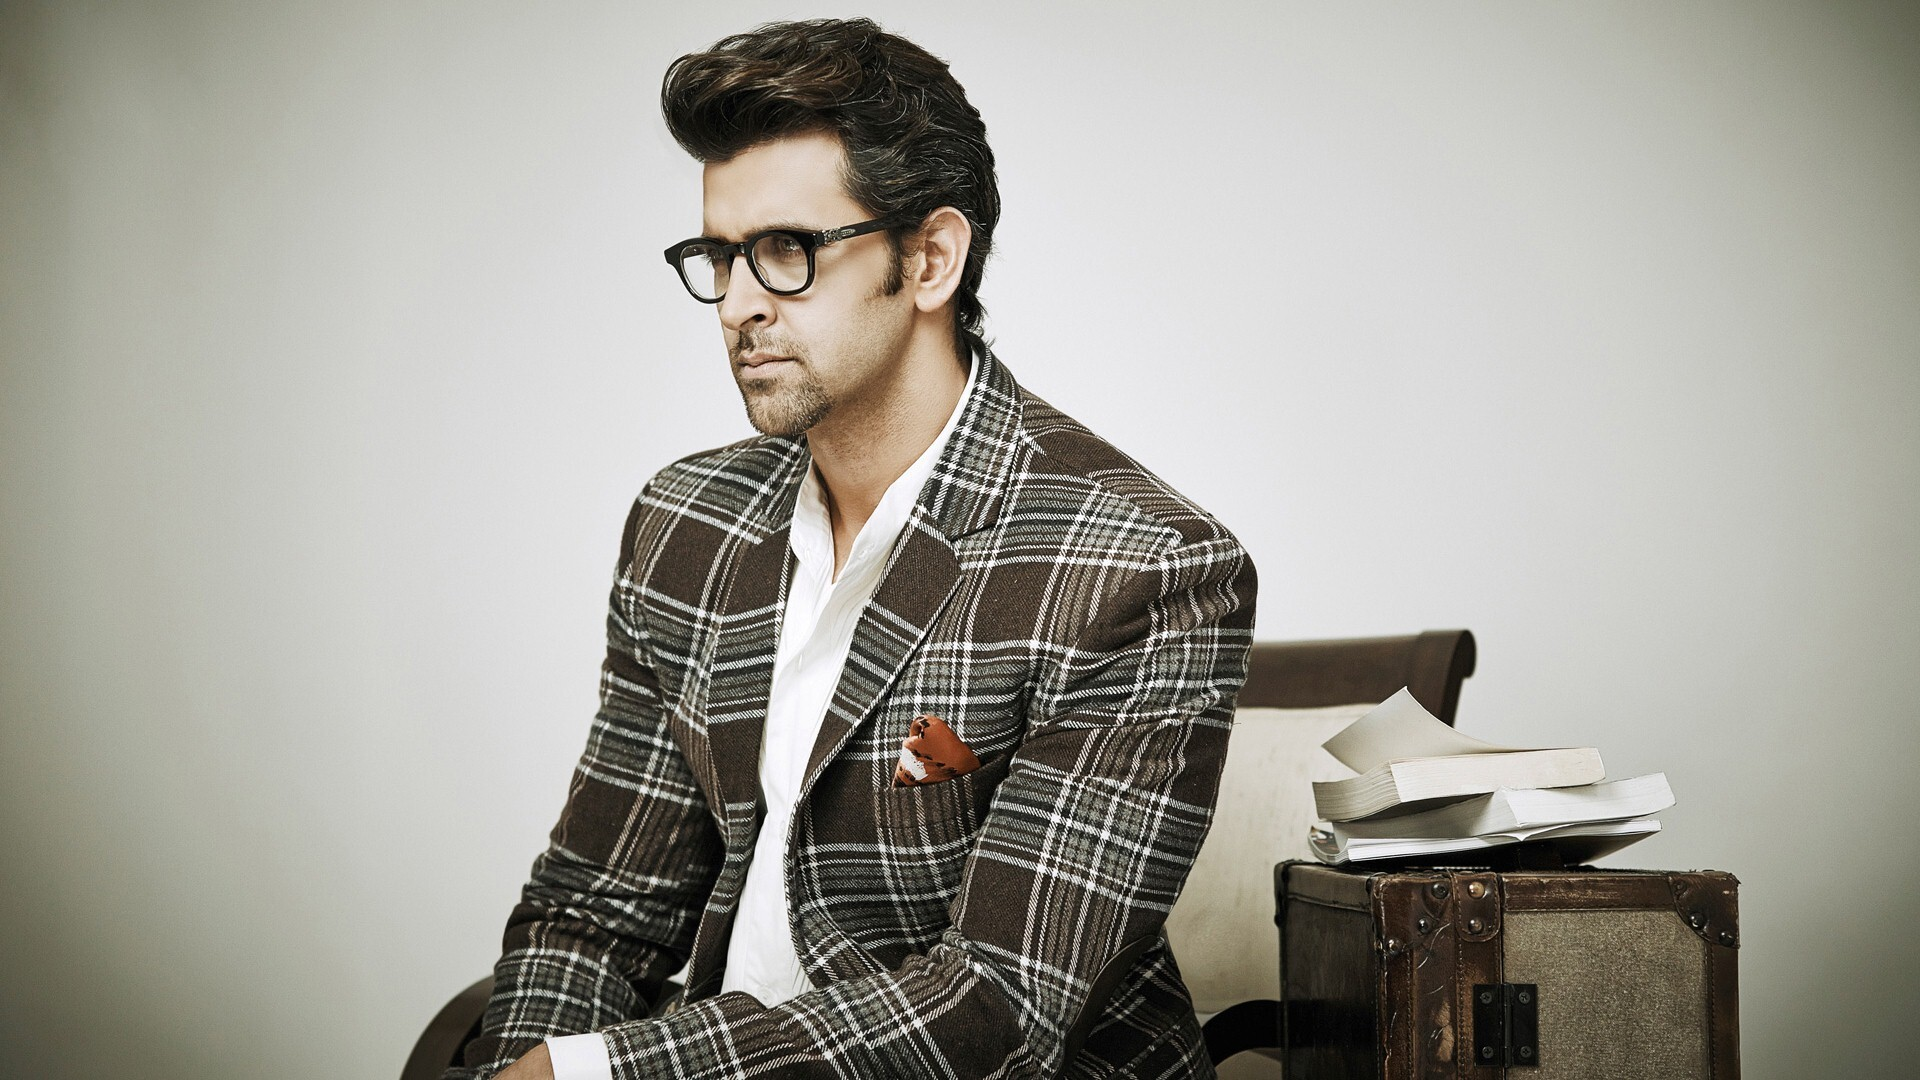 Hrithik Roshan in Goggles Photo | HD Wallpapers